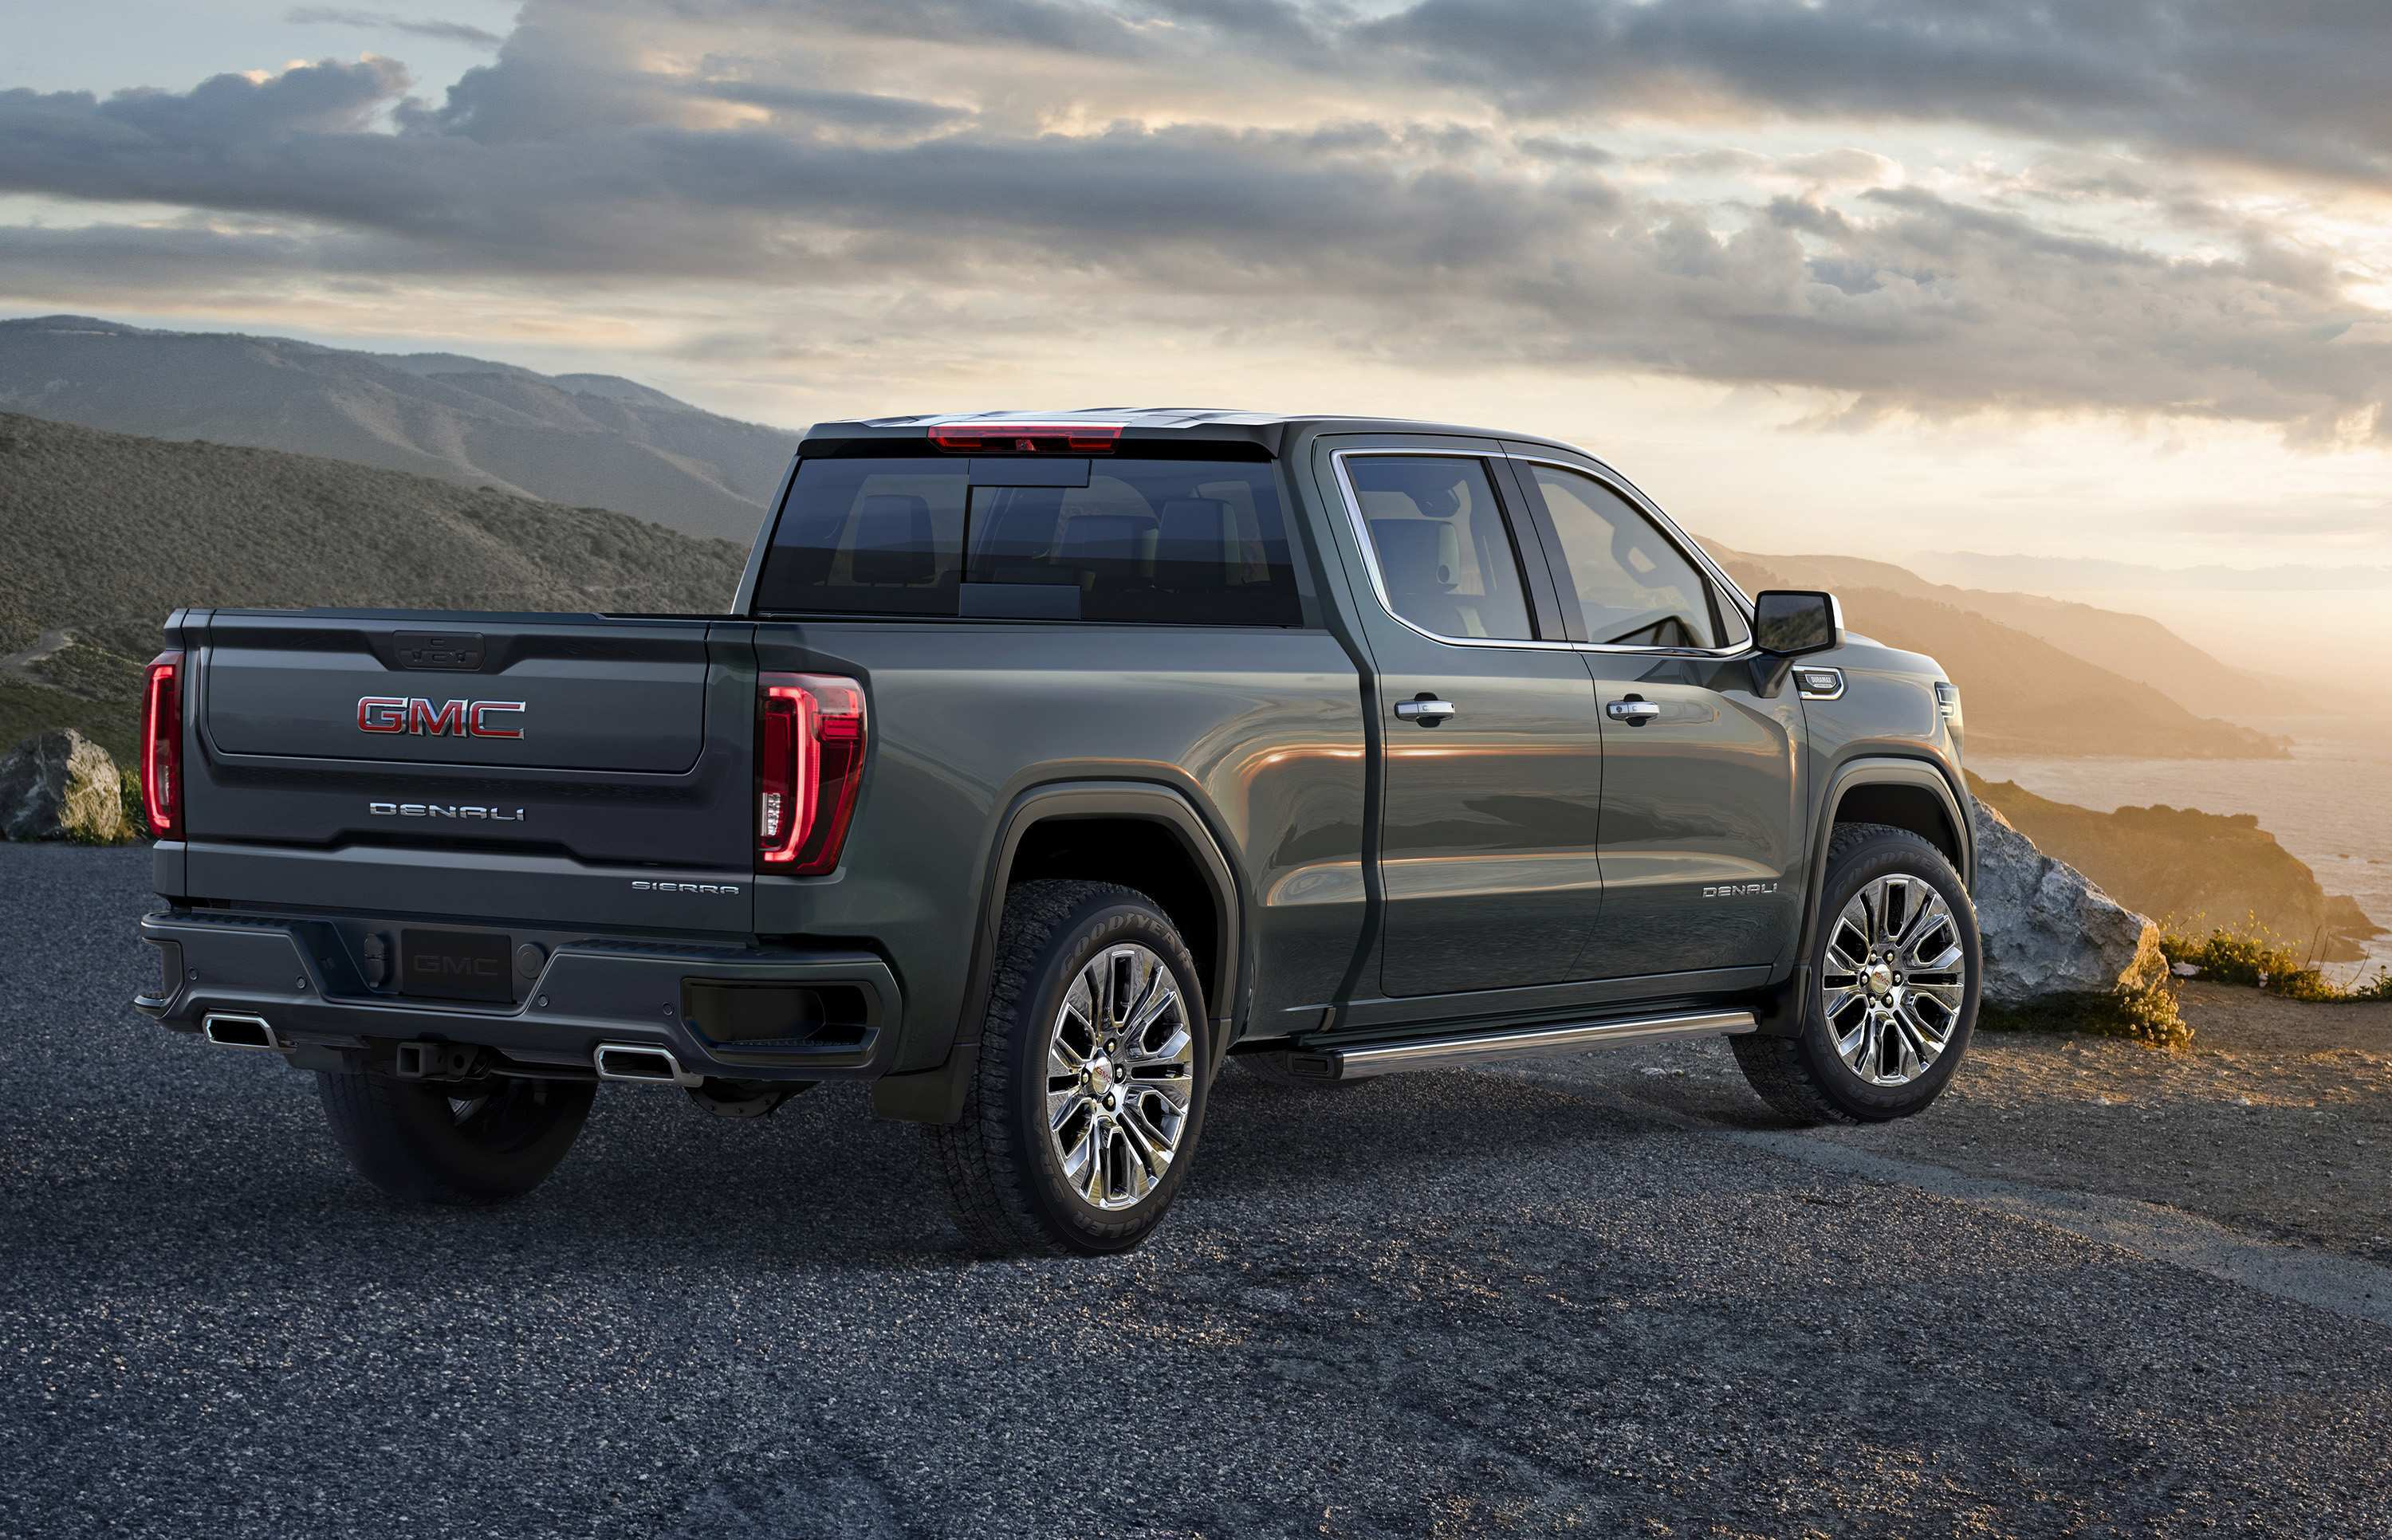 52 All New 2019 Gmc 1500 Release Date Pricing by 2019 Gmc 1500 Release Date